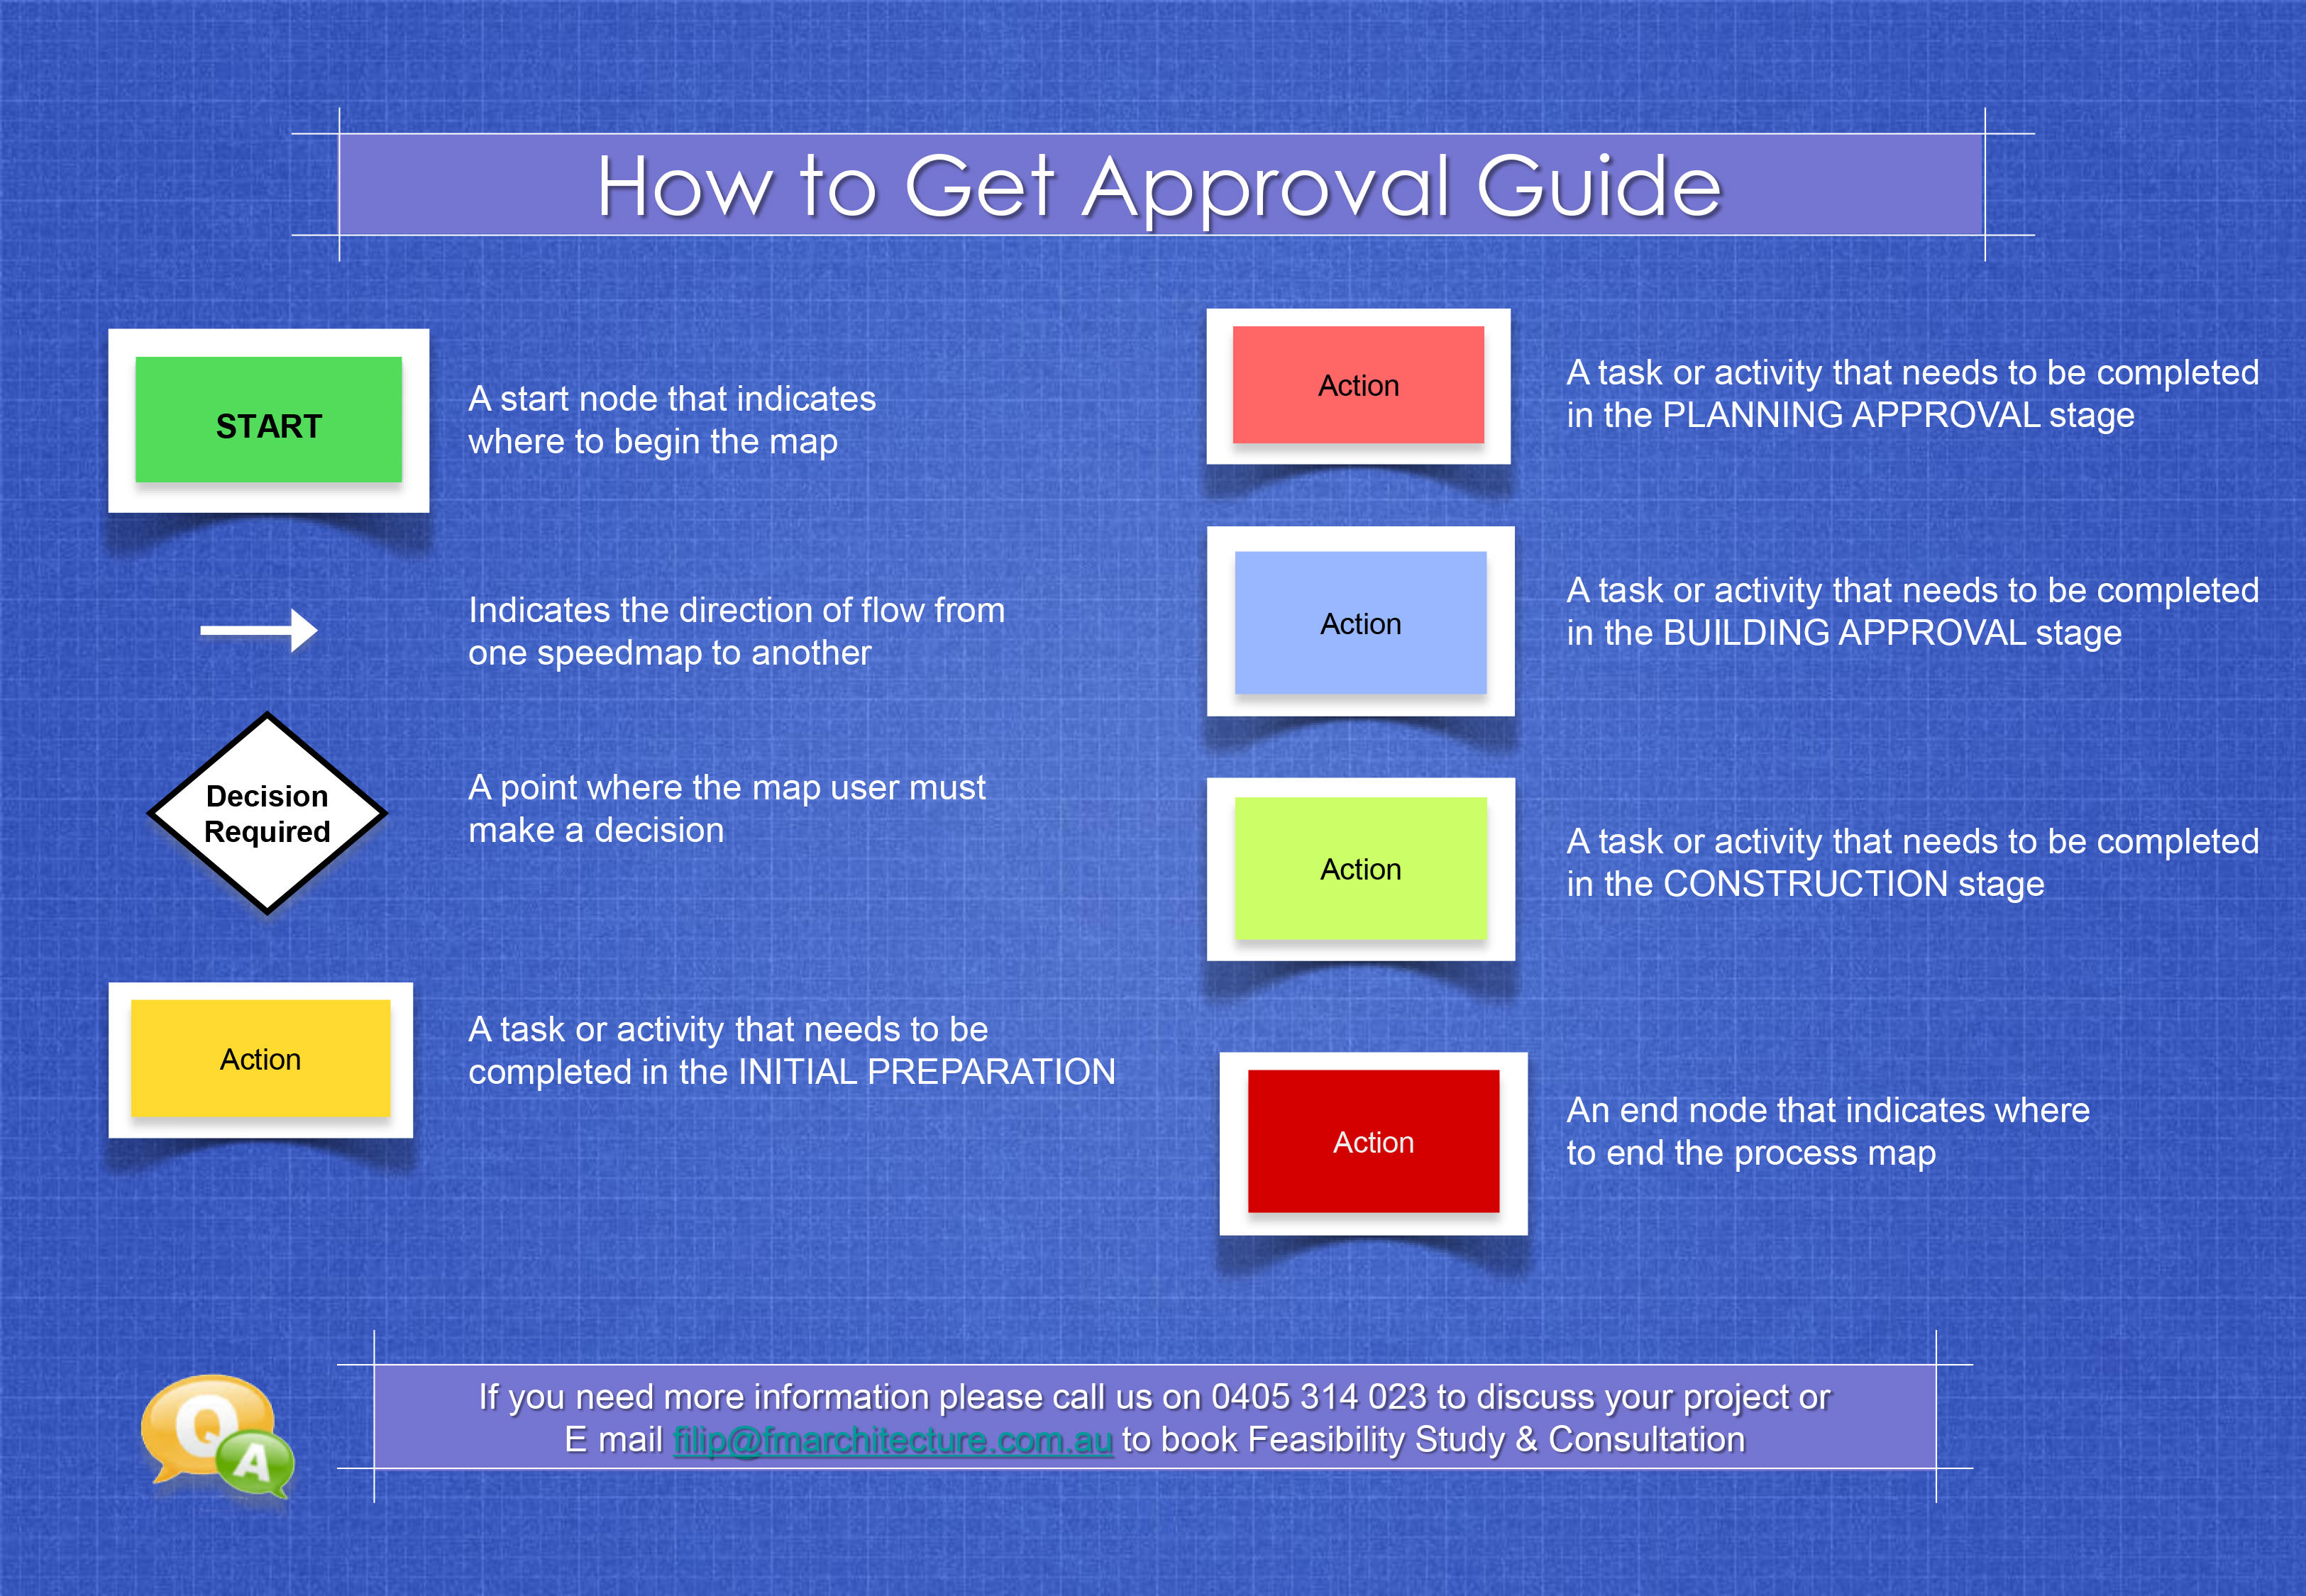 How to Get Approval Guide